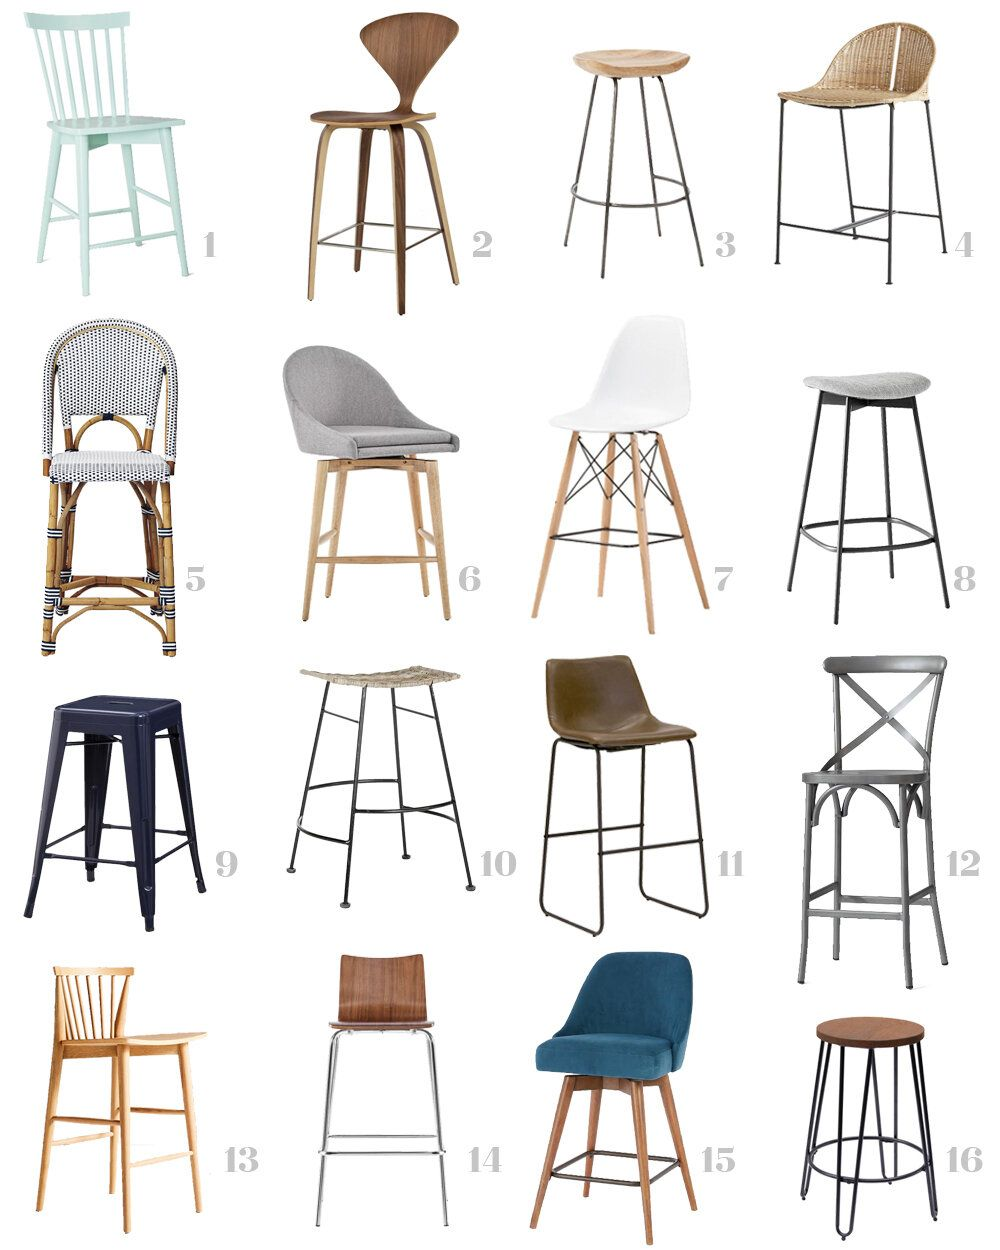 How To Choose the Right Bar Stools For Your Kitchen Island Or ...